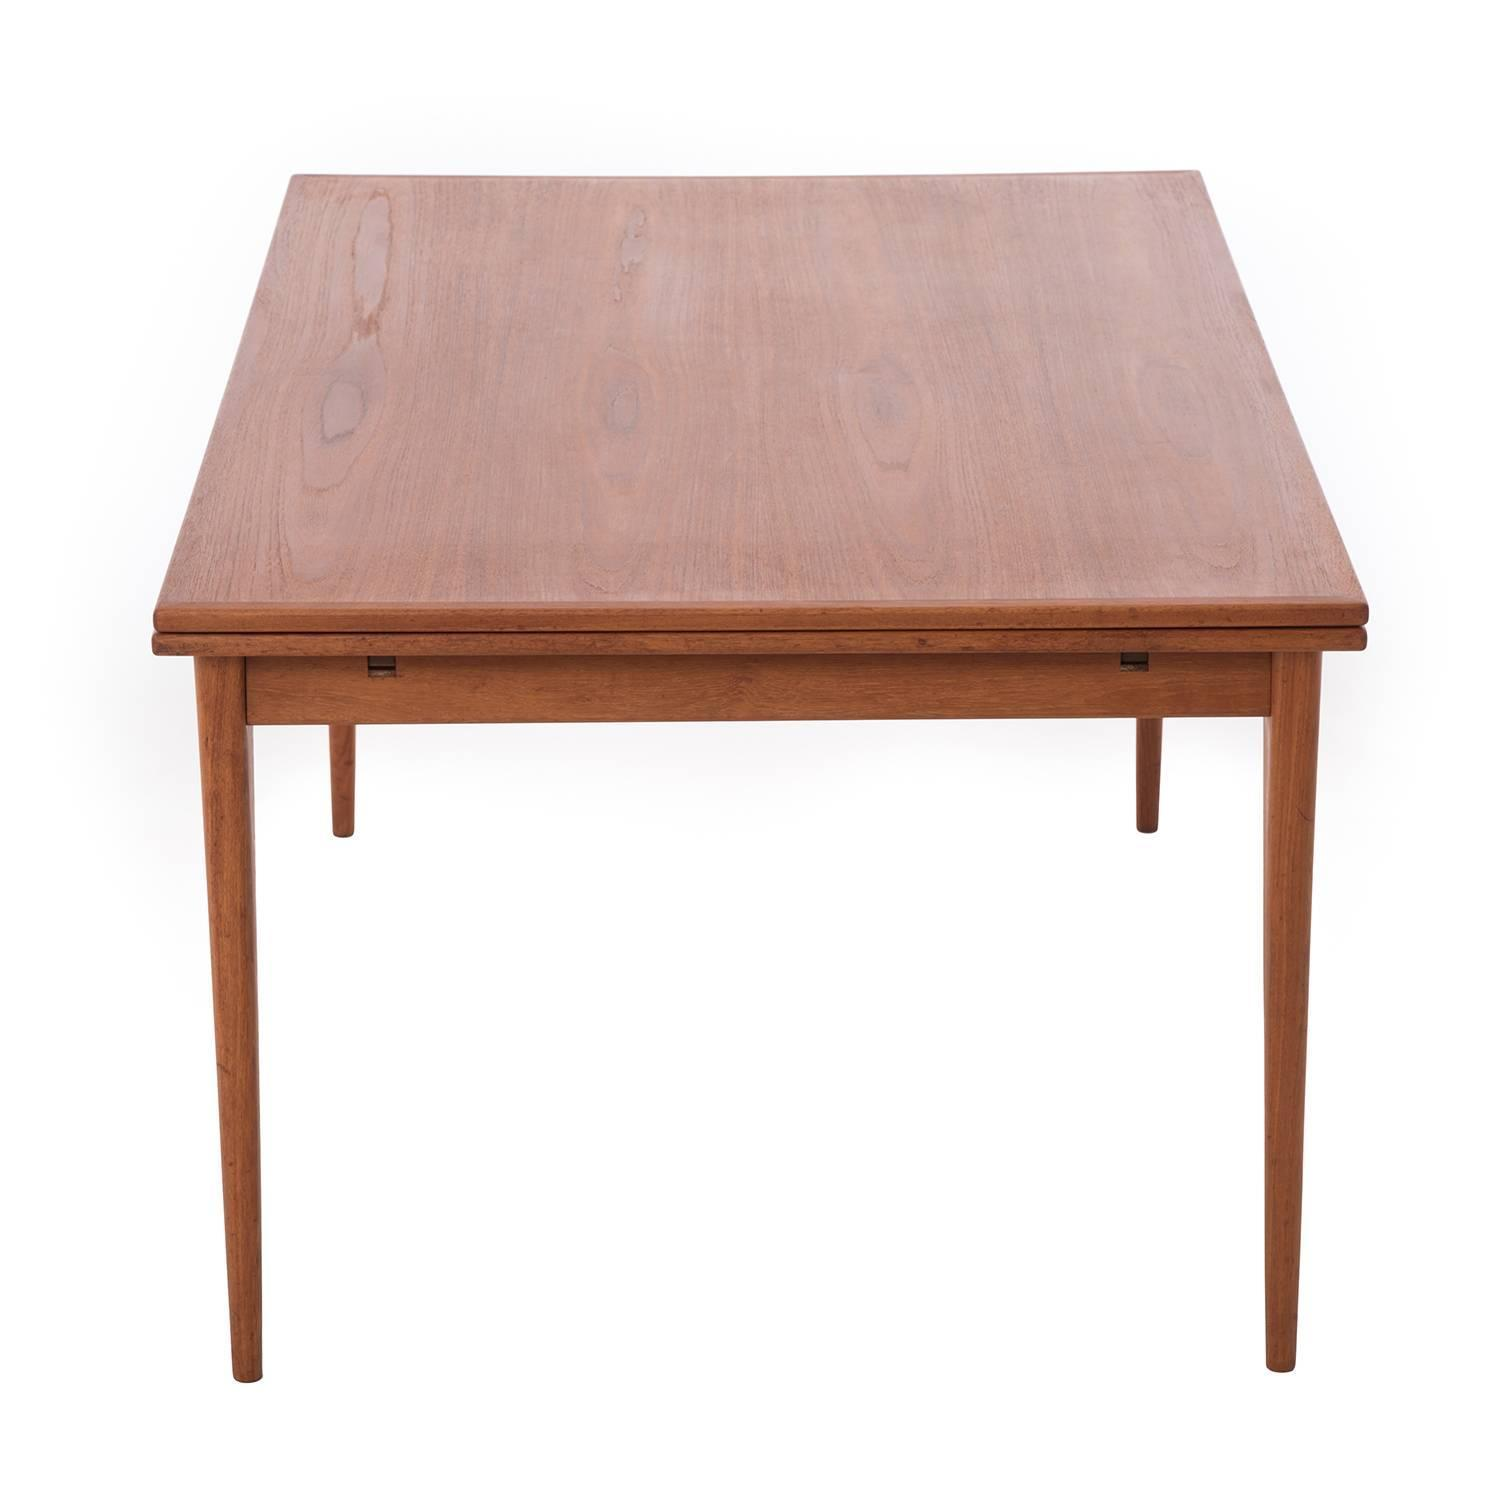 Danish modern extension dining table for sale at 1stdibs for Most beautiful dining room tables